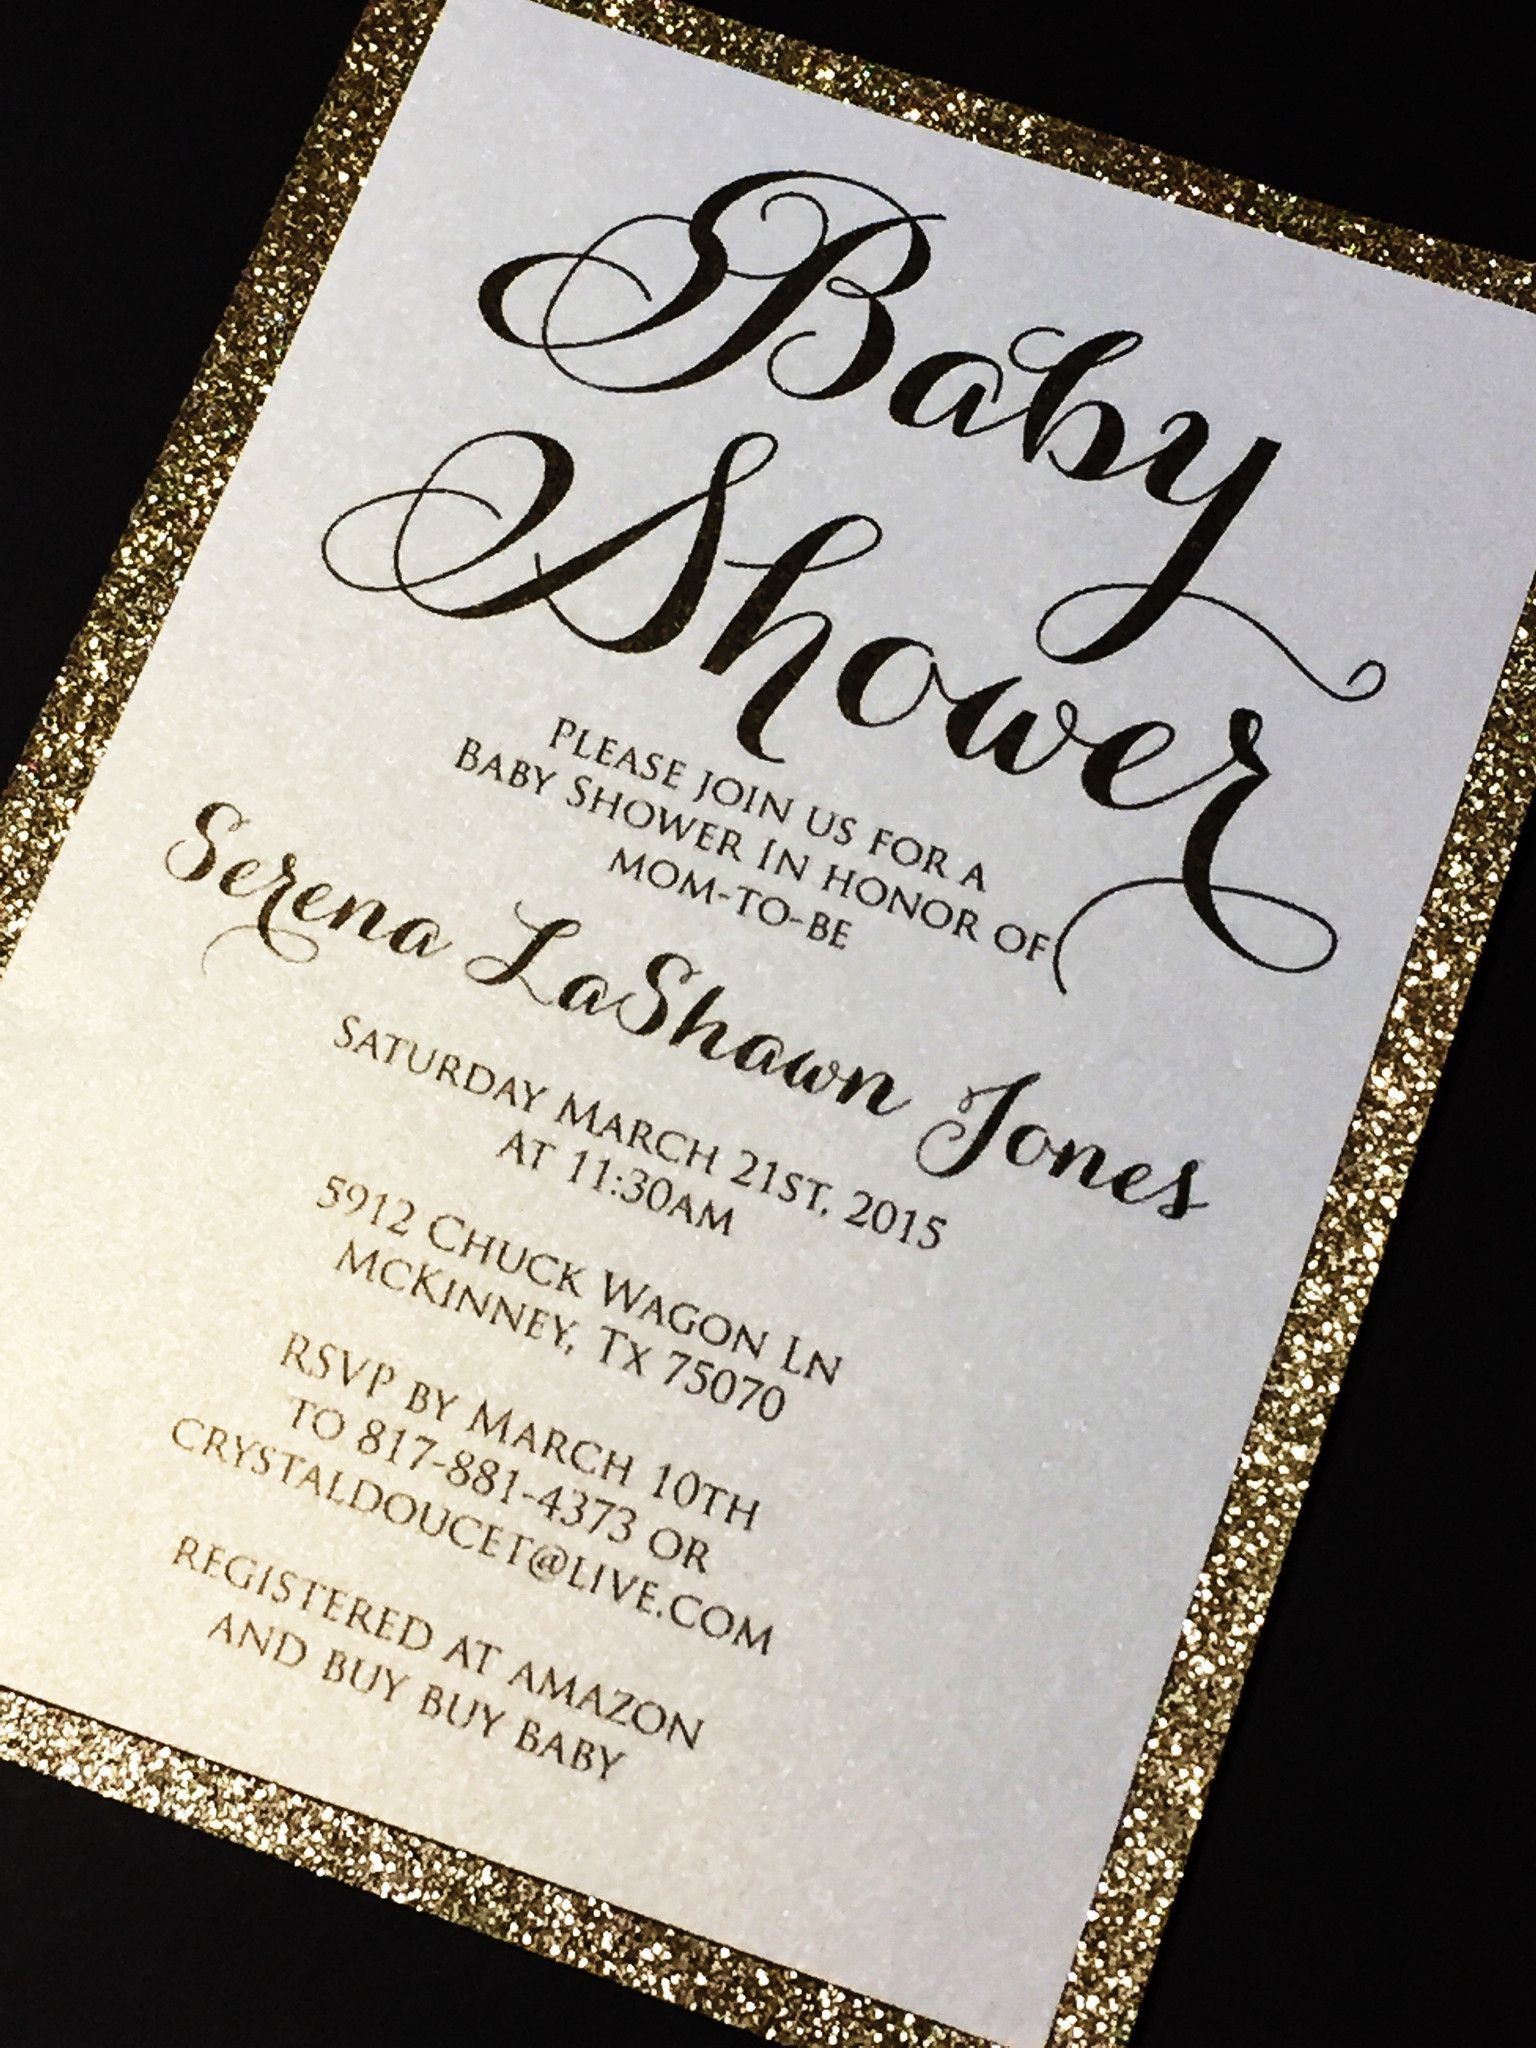 Baby shower invitation glitter baby shower invitations engagement baby shower invitation glitter baby shower invitations engagement announcement wedding invitations gold silver die cut invite serena filmwisefo